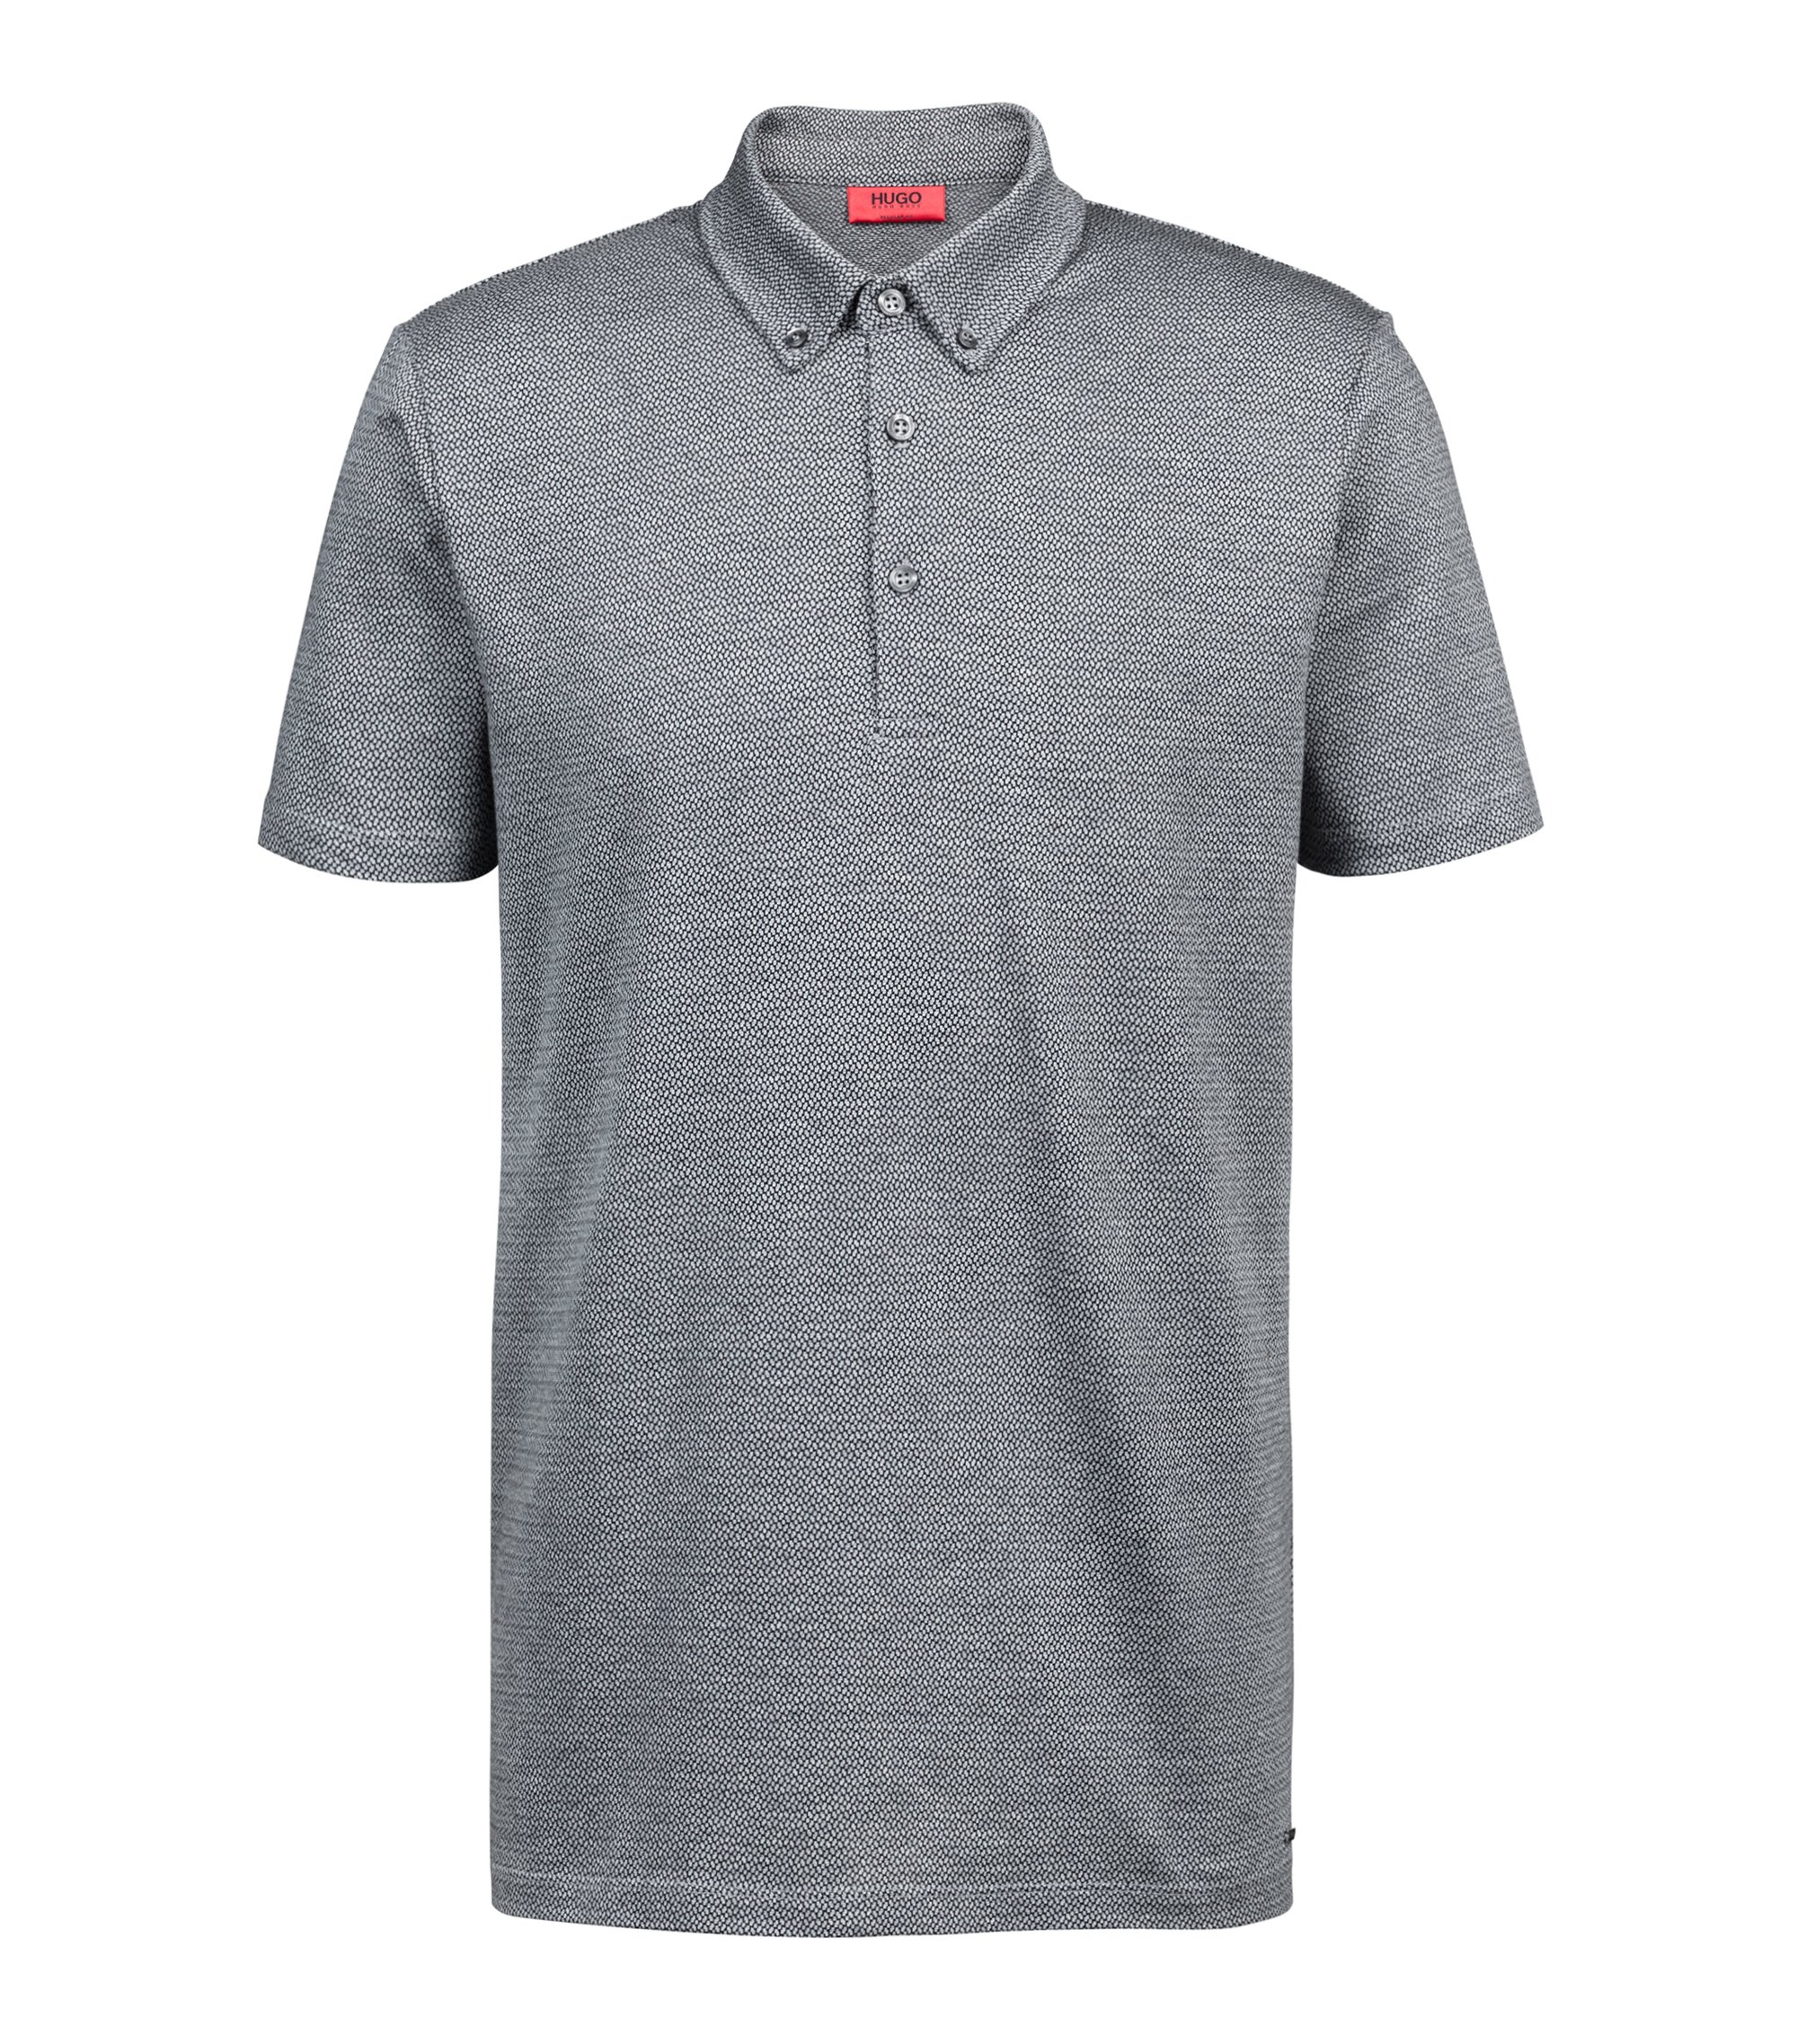 Regular-fit knitted polo shirt in lightweight cotton jacquard, Grey